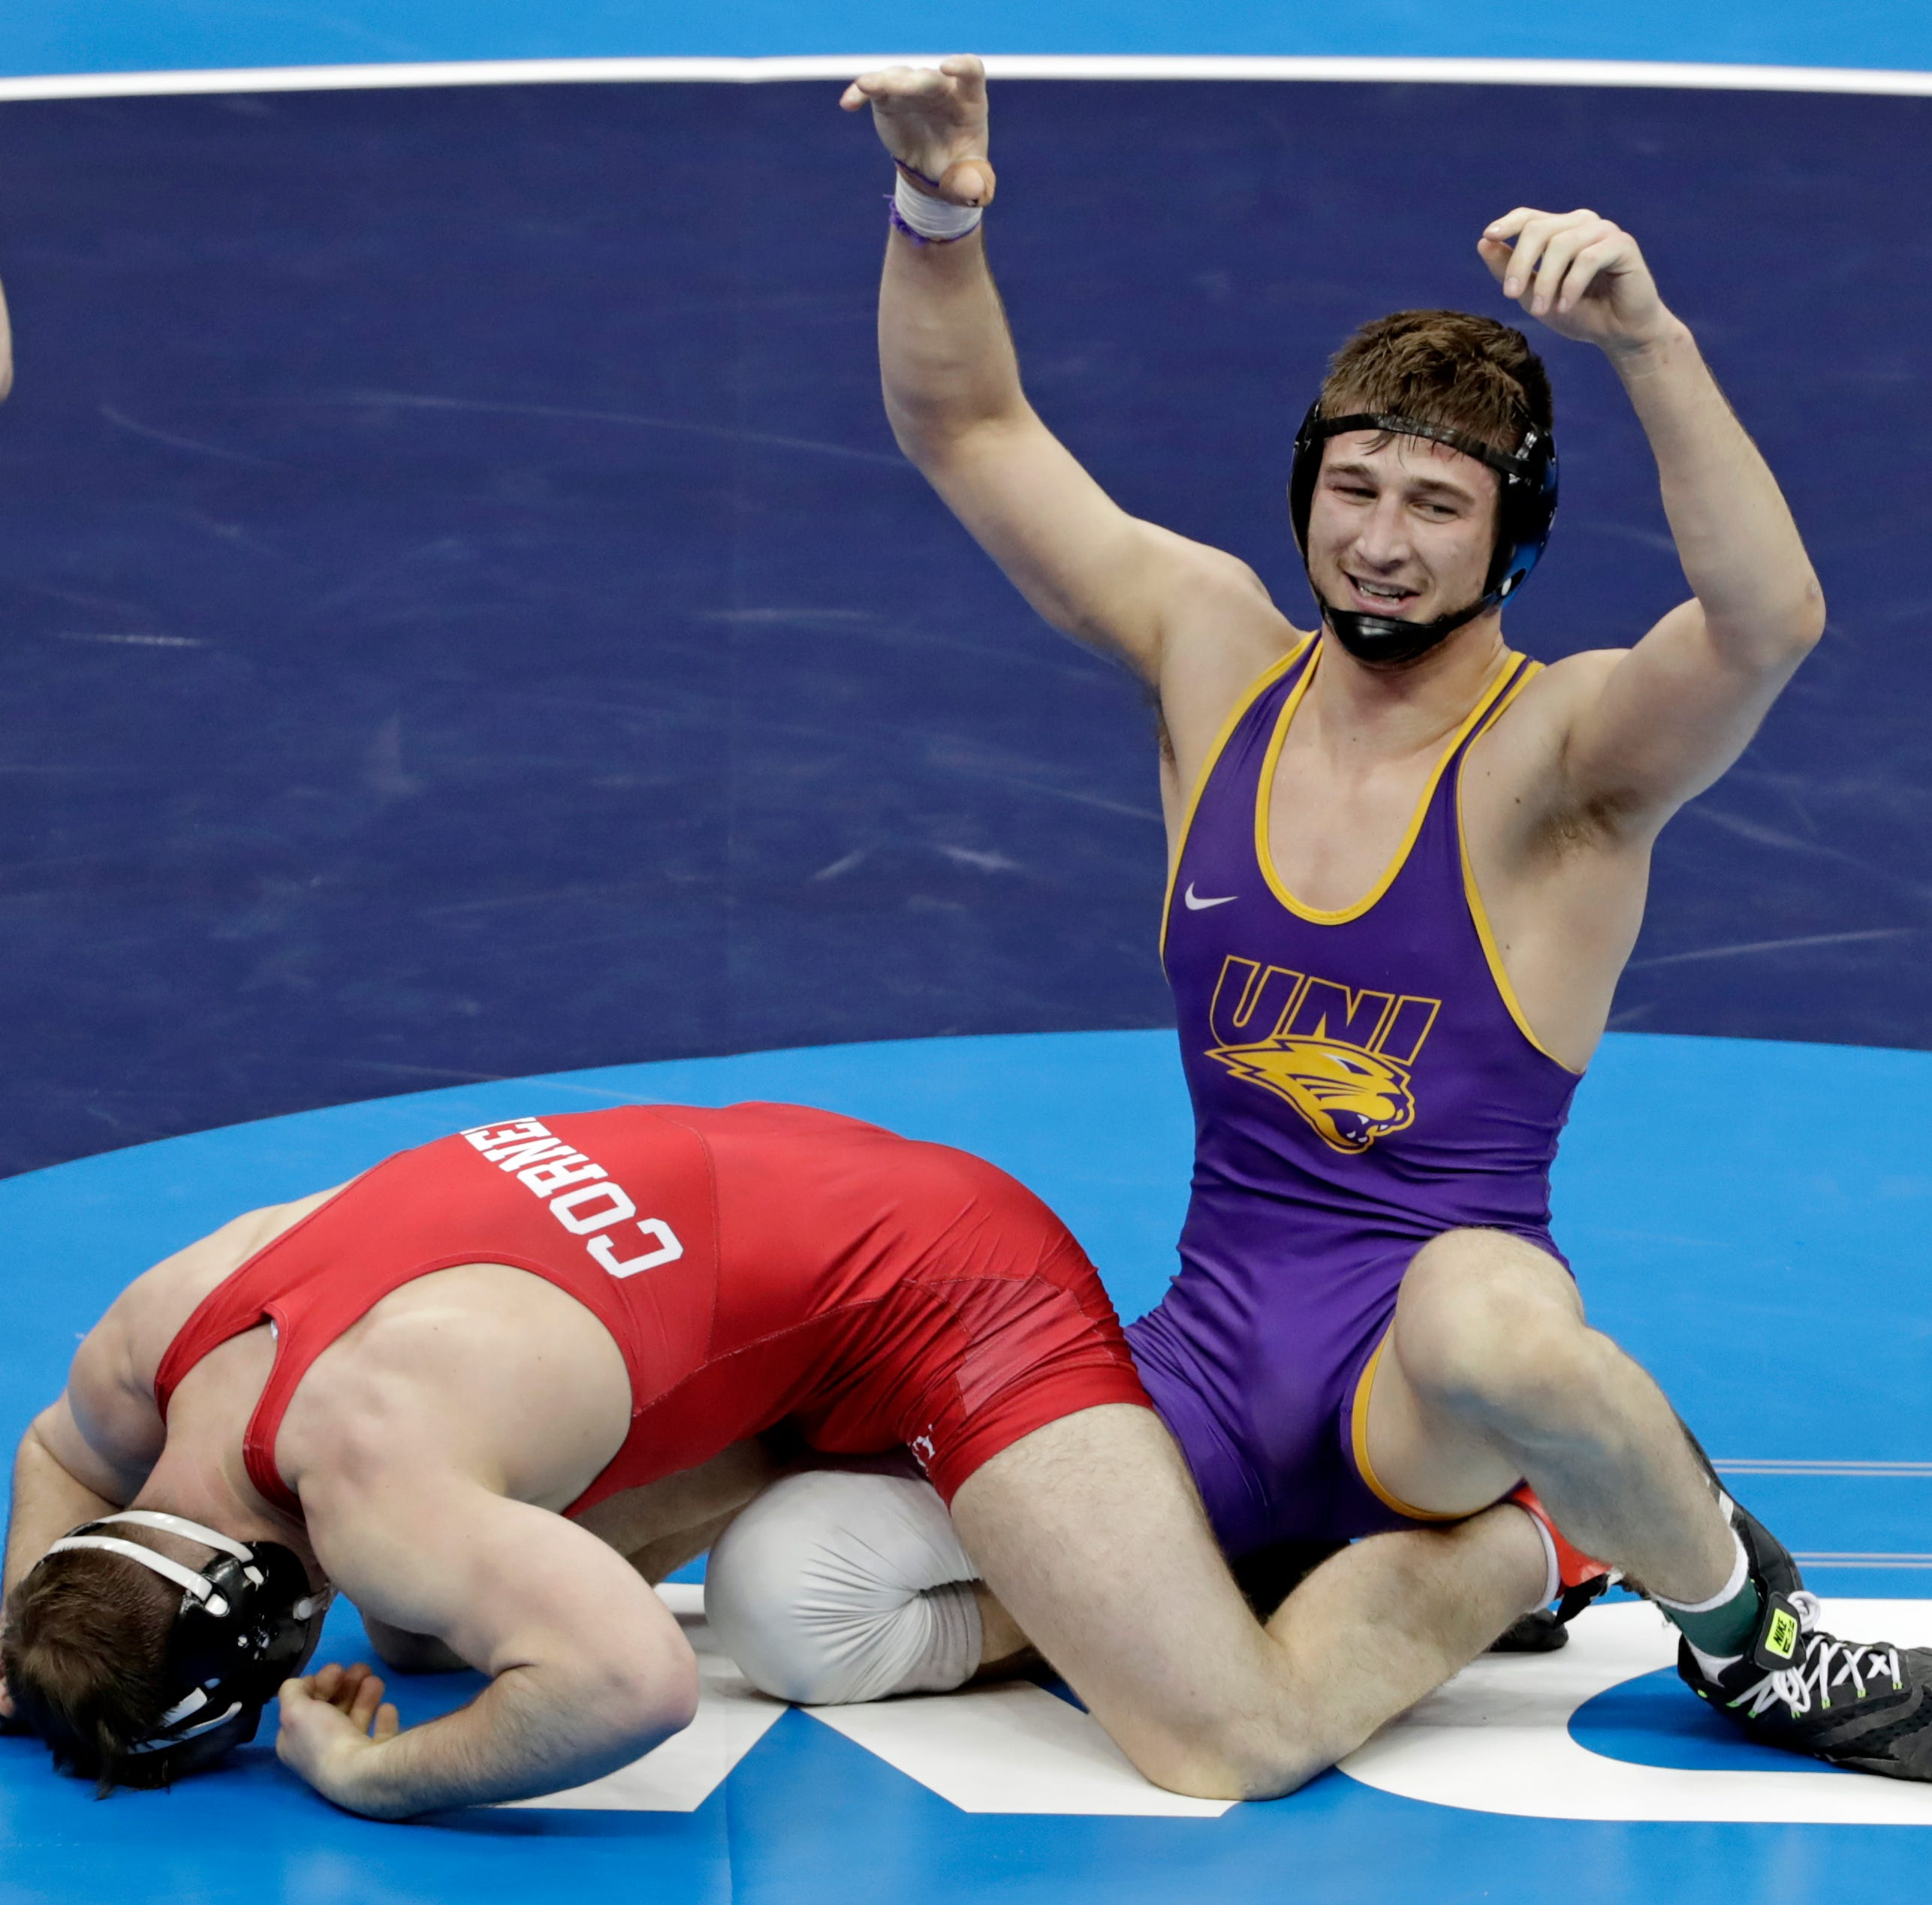 NCAA Wrestling: Northern Iowa's Drew Foster wins national championship